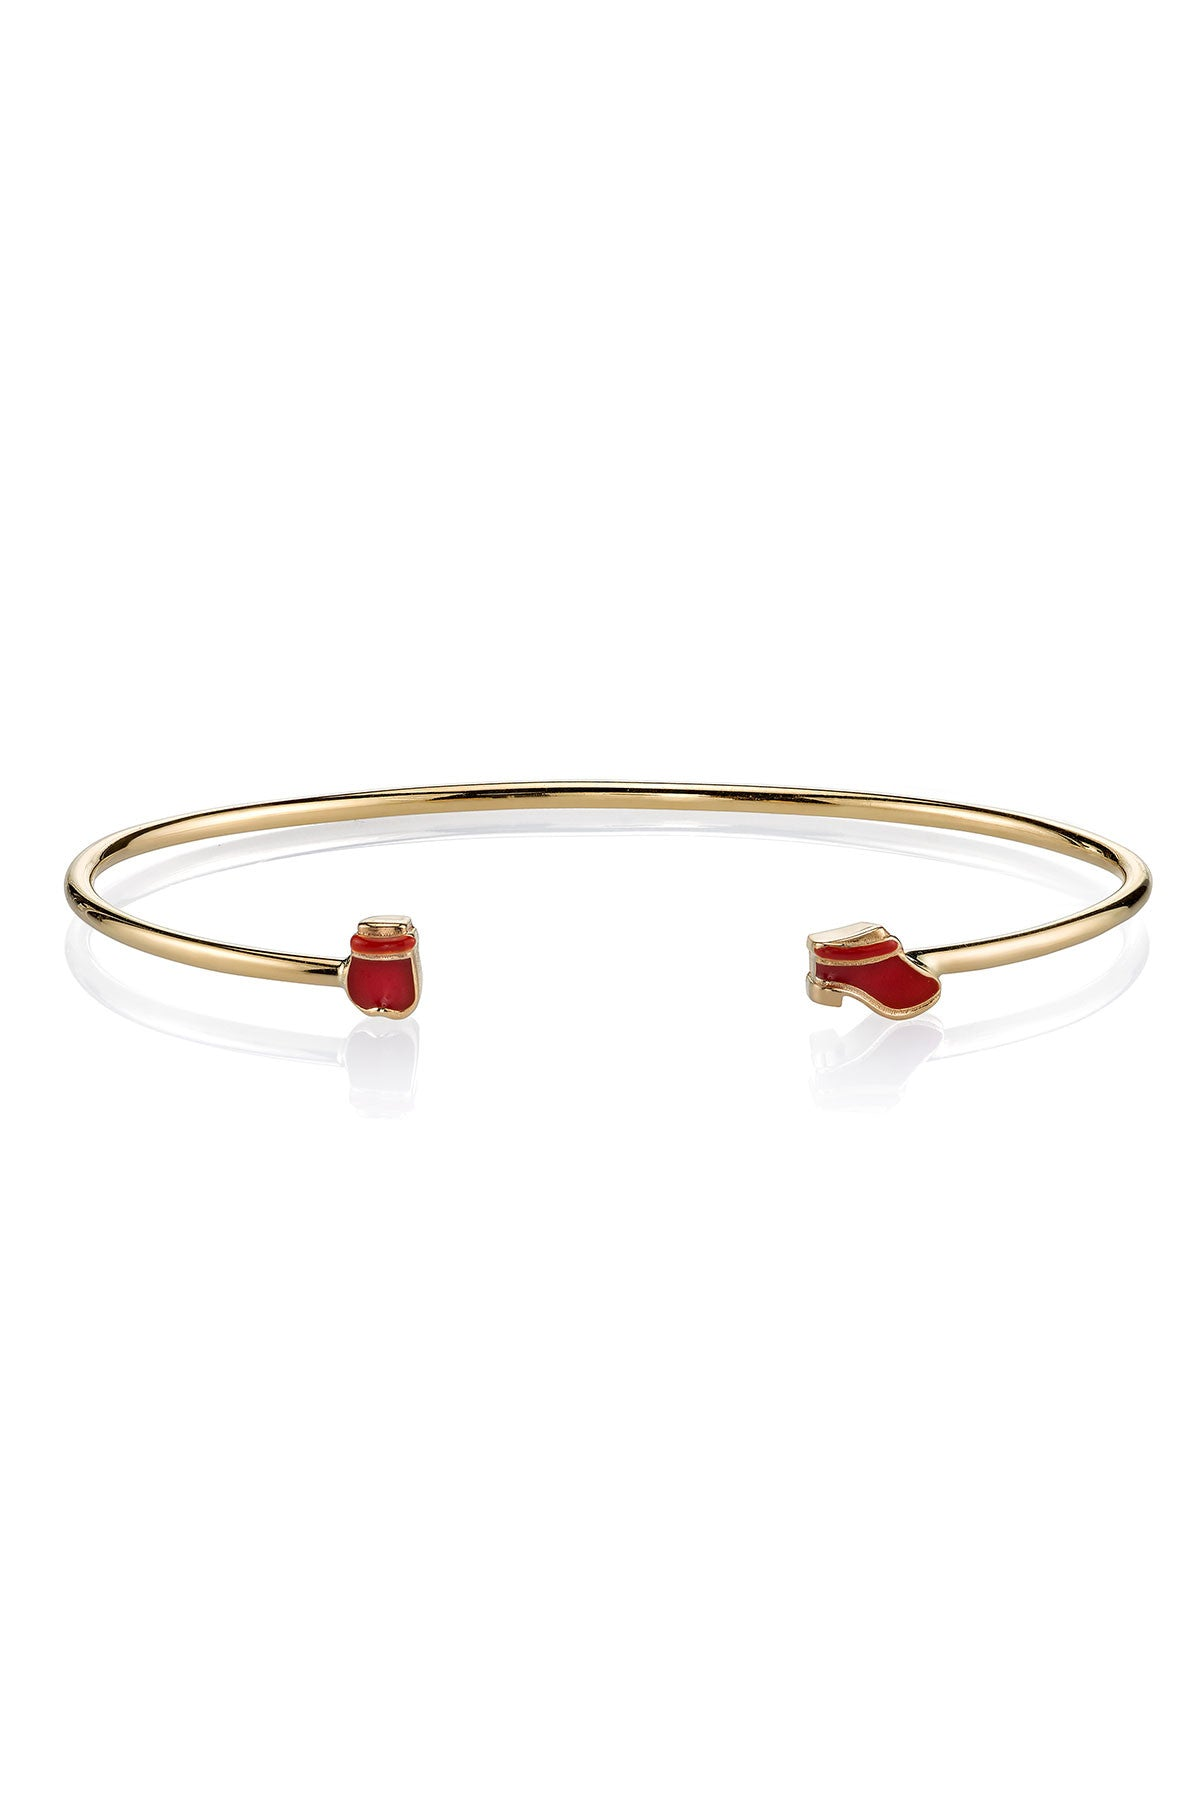 Mr. Potato Head Wire Bangle with Mrs. Red Shoes